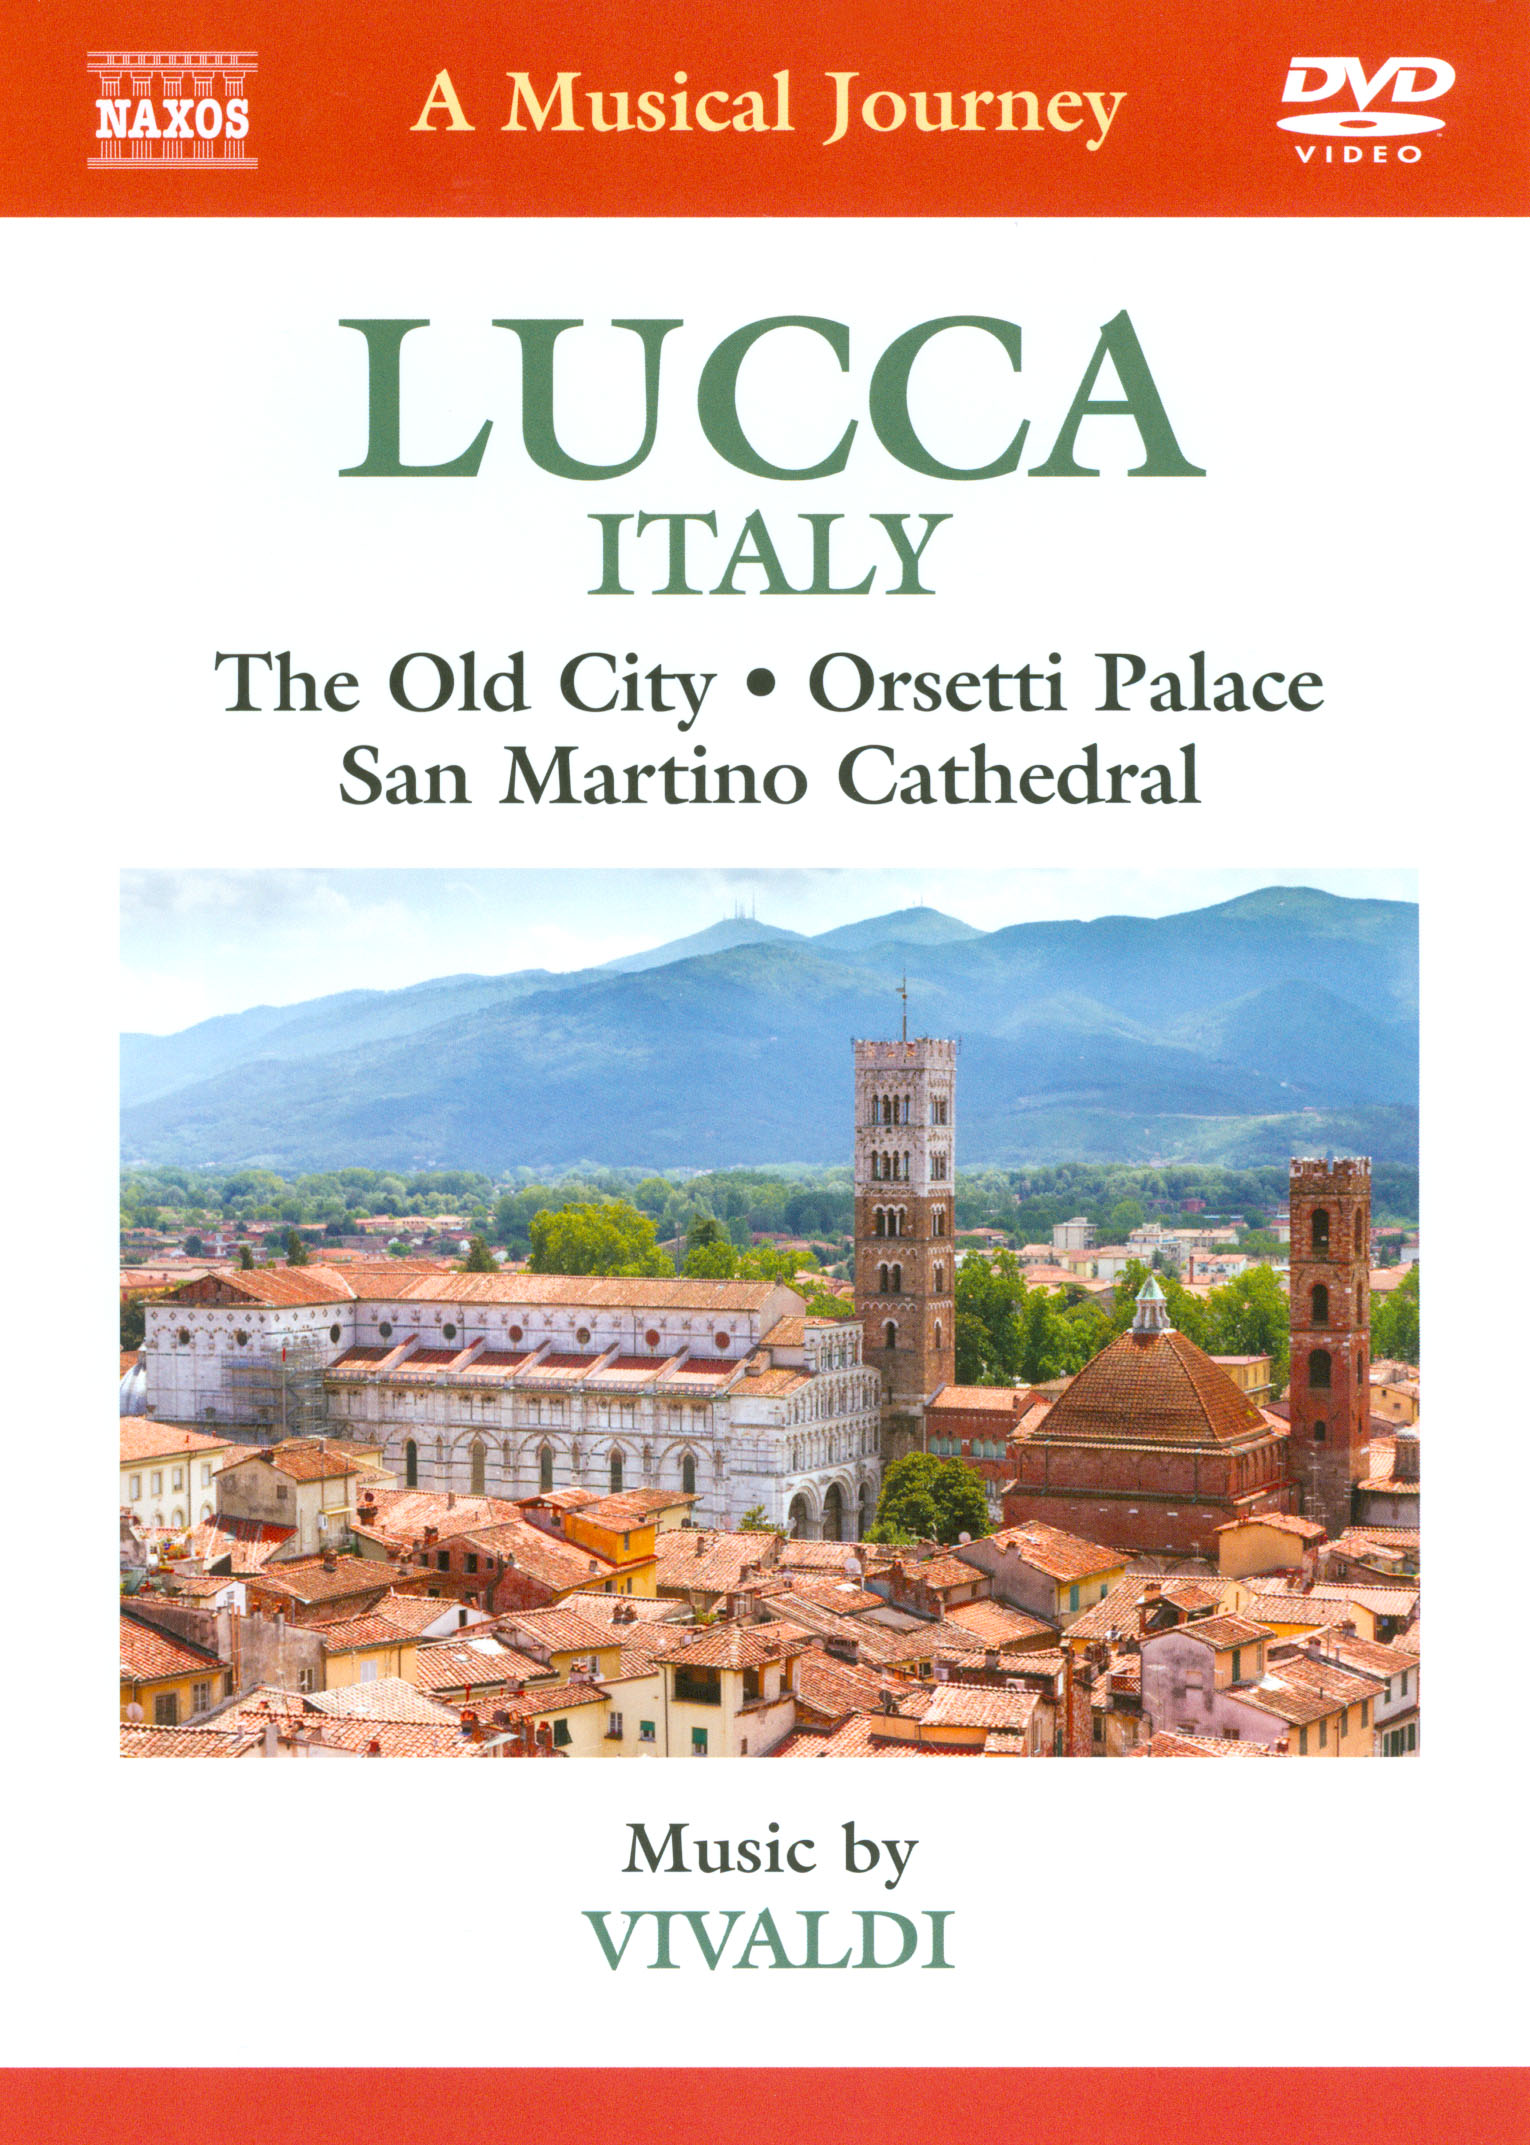 A Musical Journey: Lucca, Italy - The Old City/Orsetti Palace/San Martino Cathedral